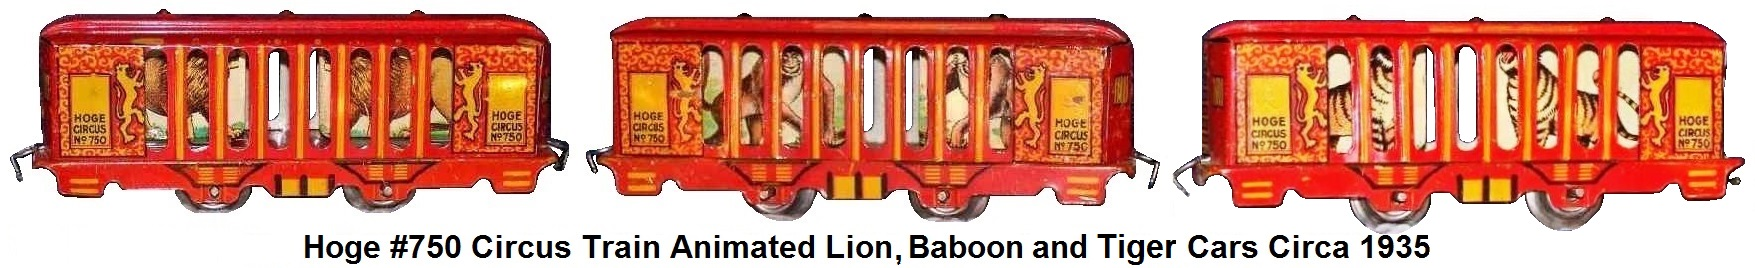 Hoge Animated Lion and Baboon cars from #750 circus train in 'O' gauge circa 1935